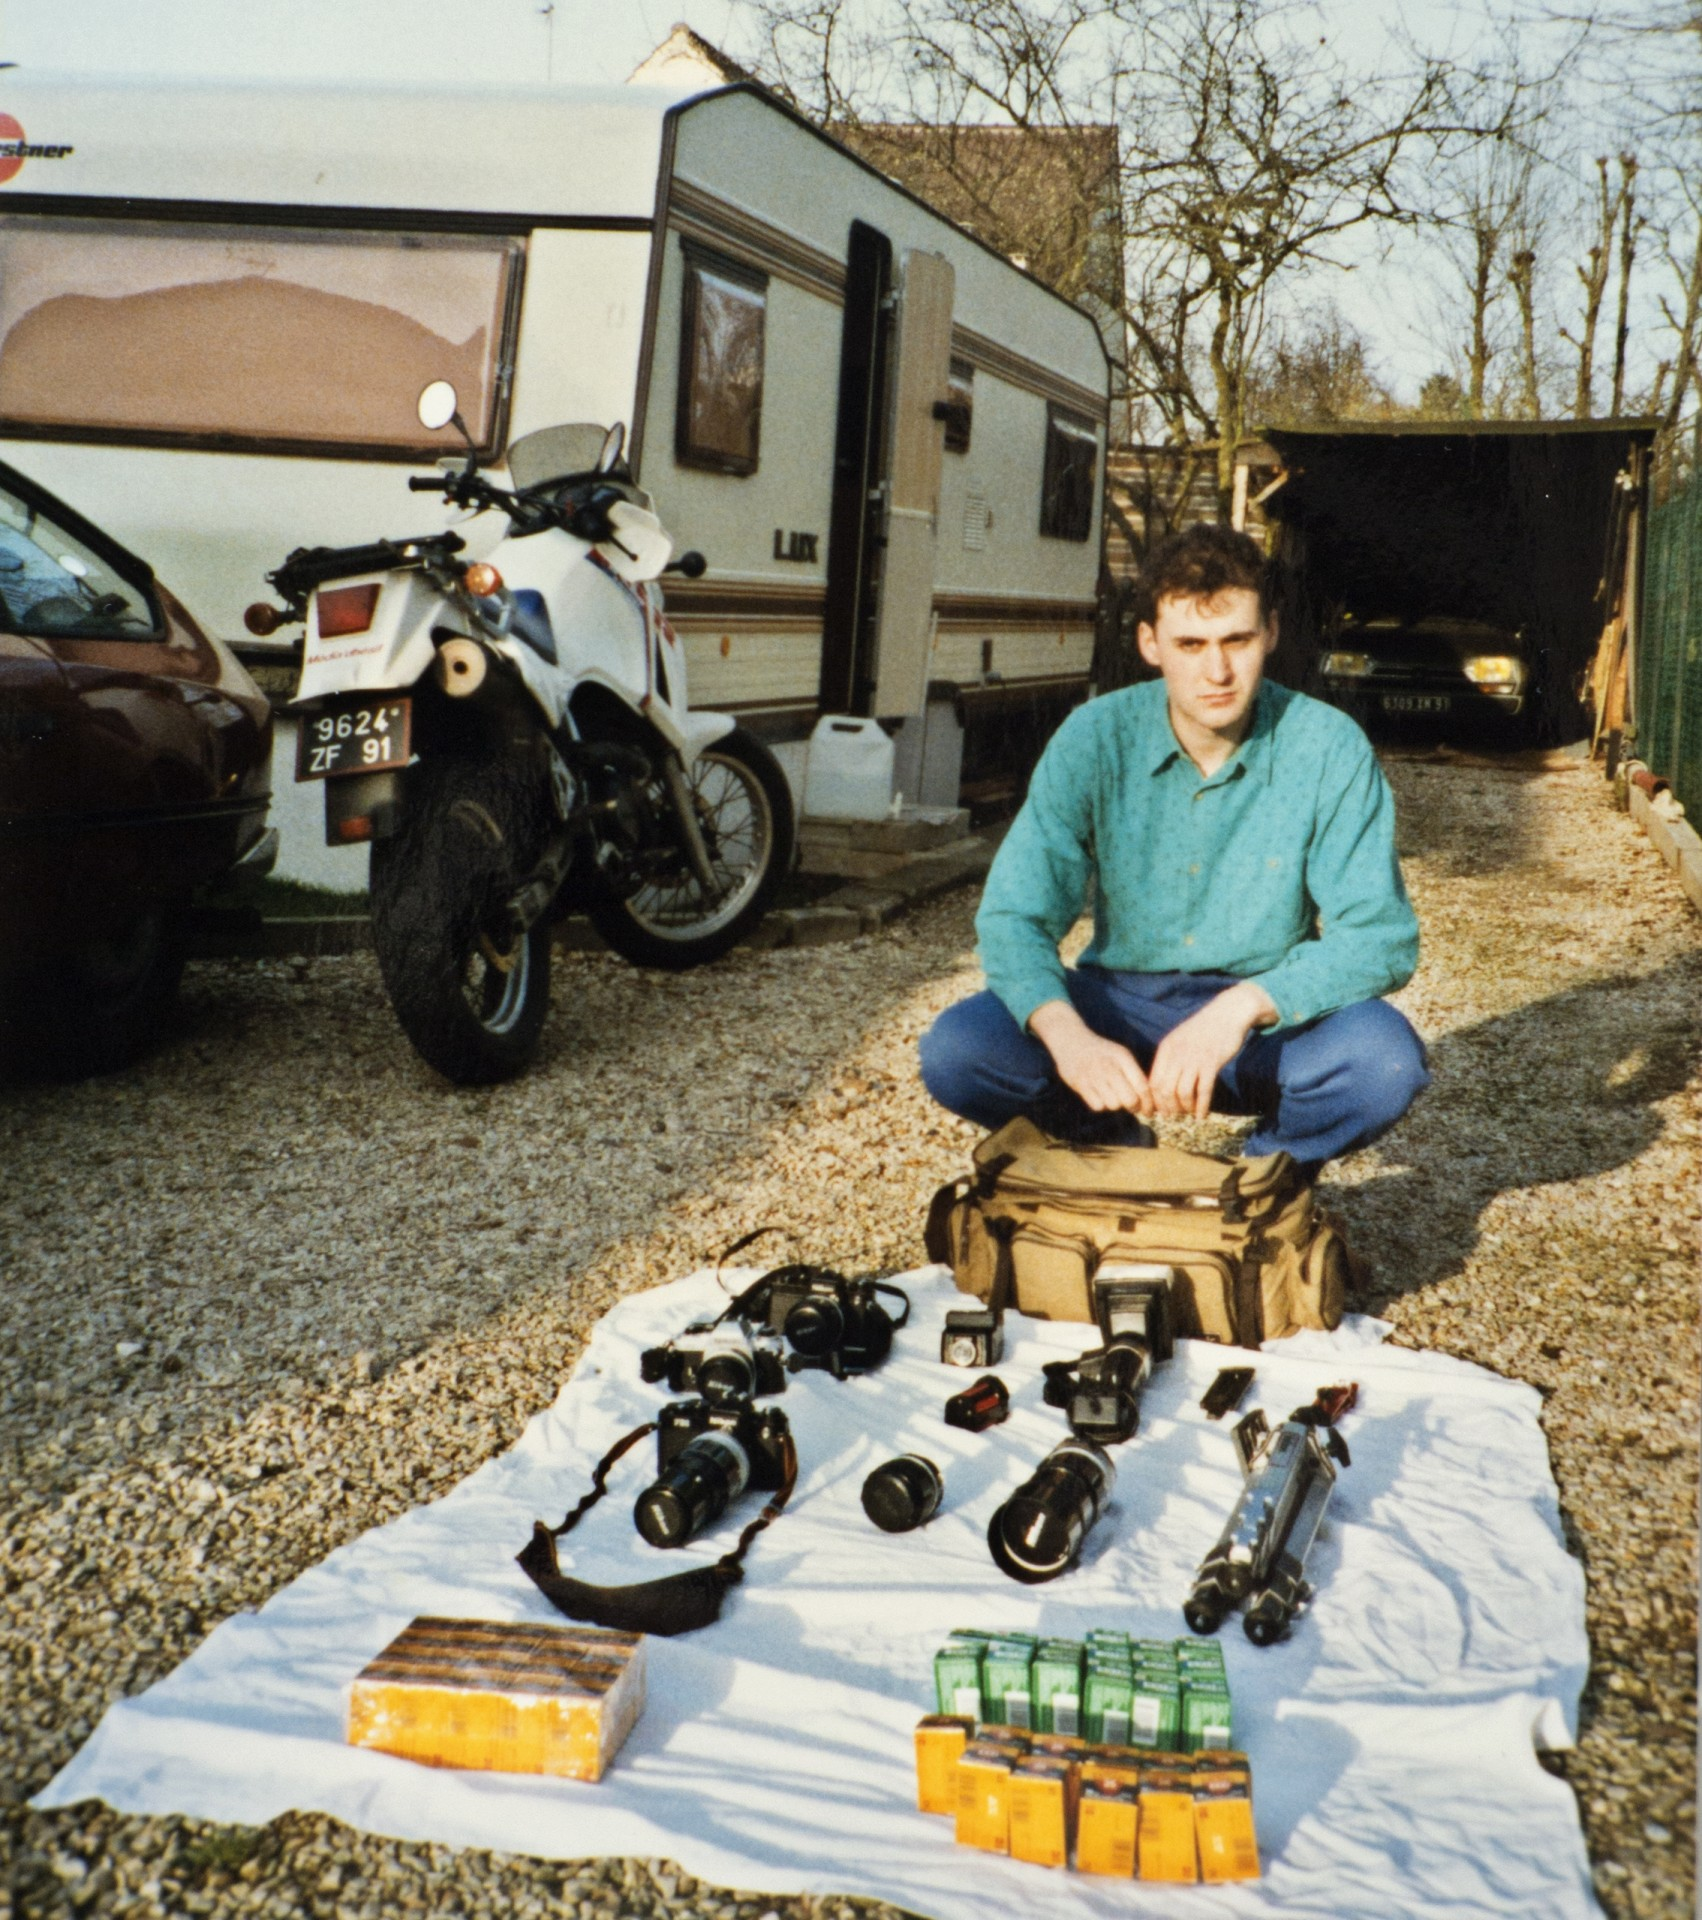 My basic photography equipment back to 1988 in preparation of my first report in USA (Daytona Bike Week). Yes, I was living in a caravan like a gipsy.